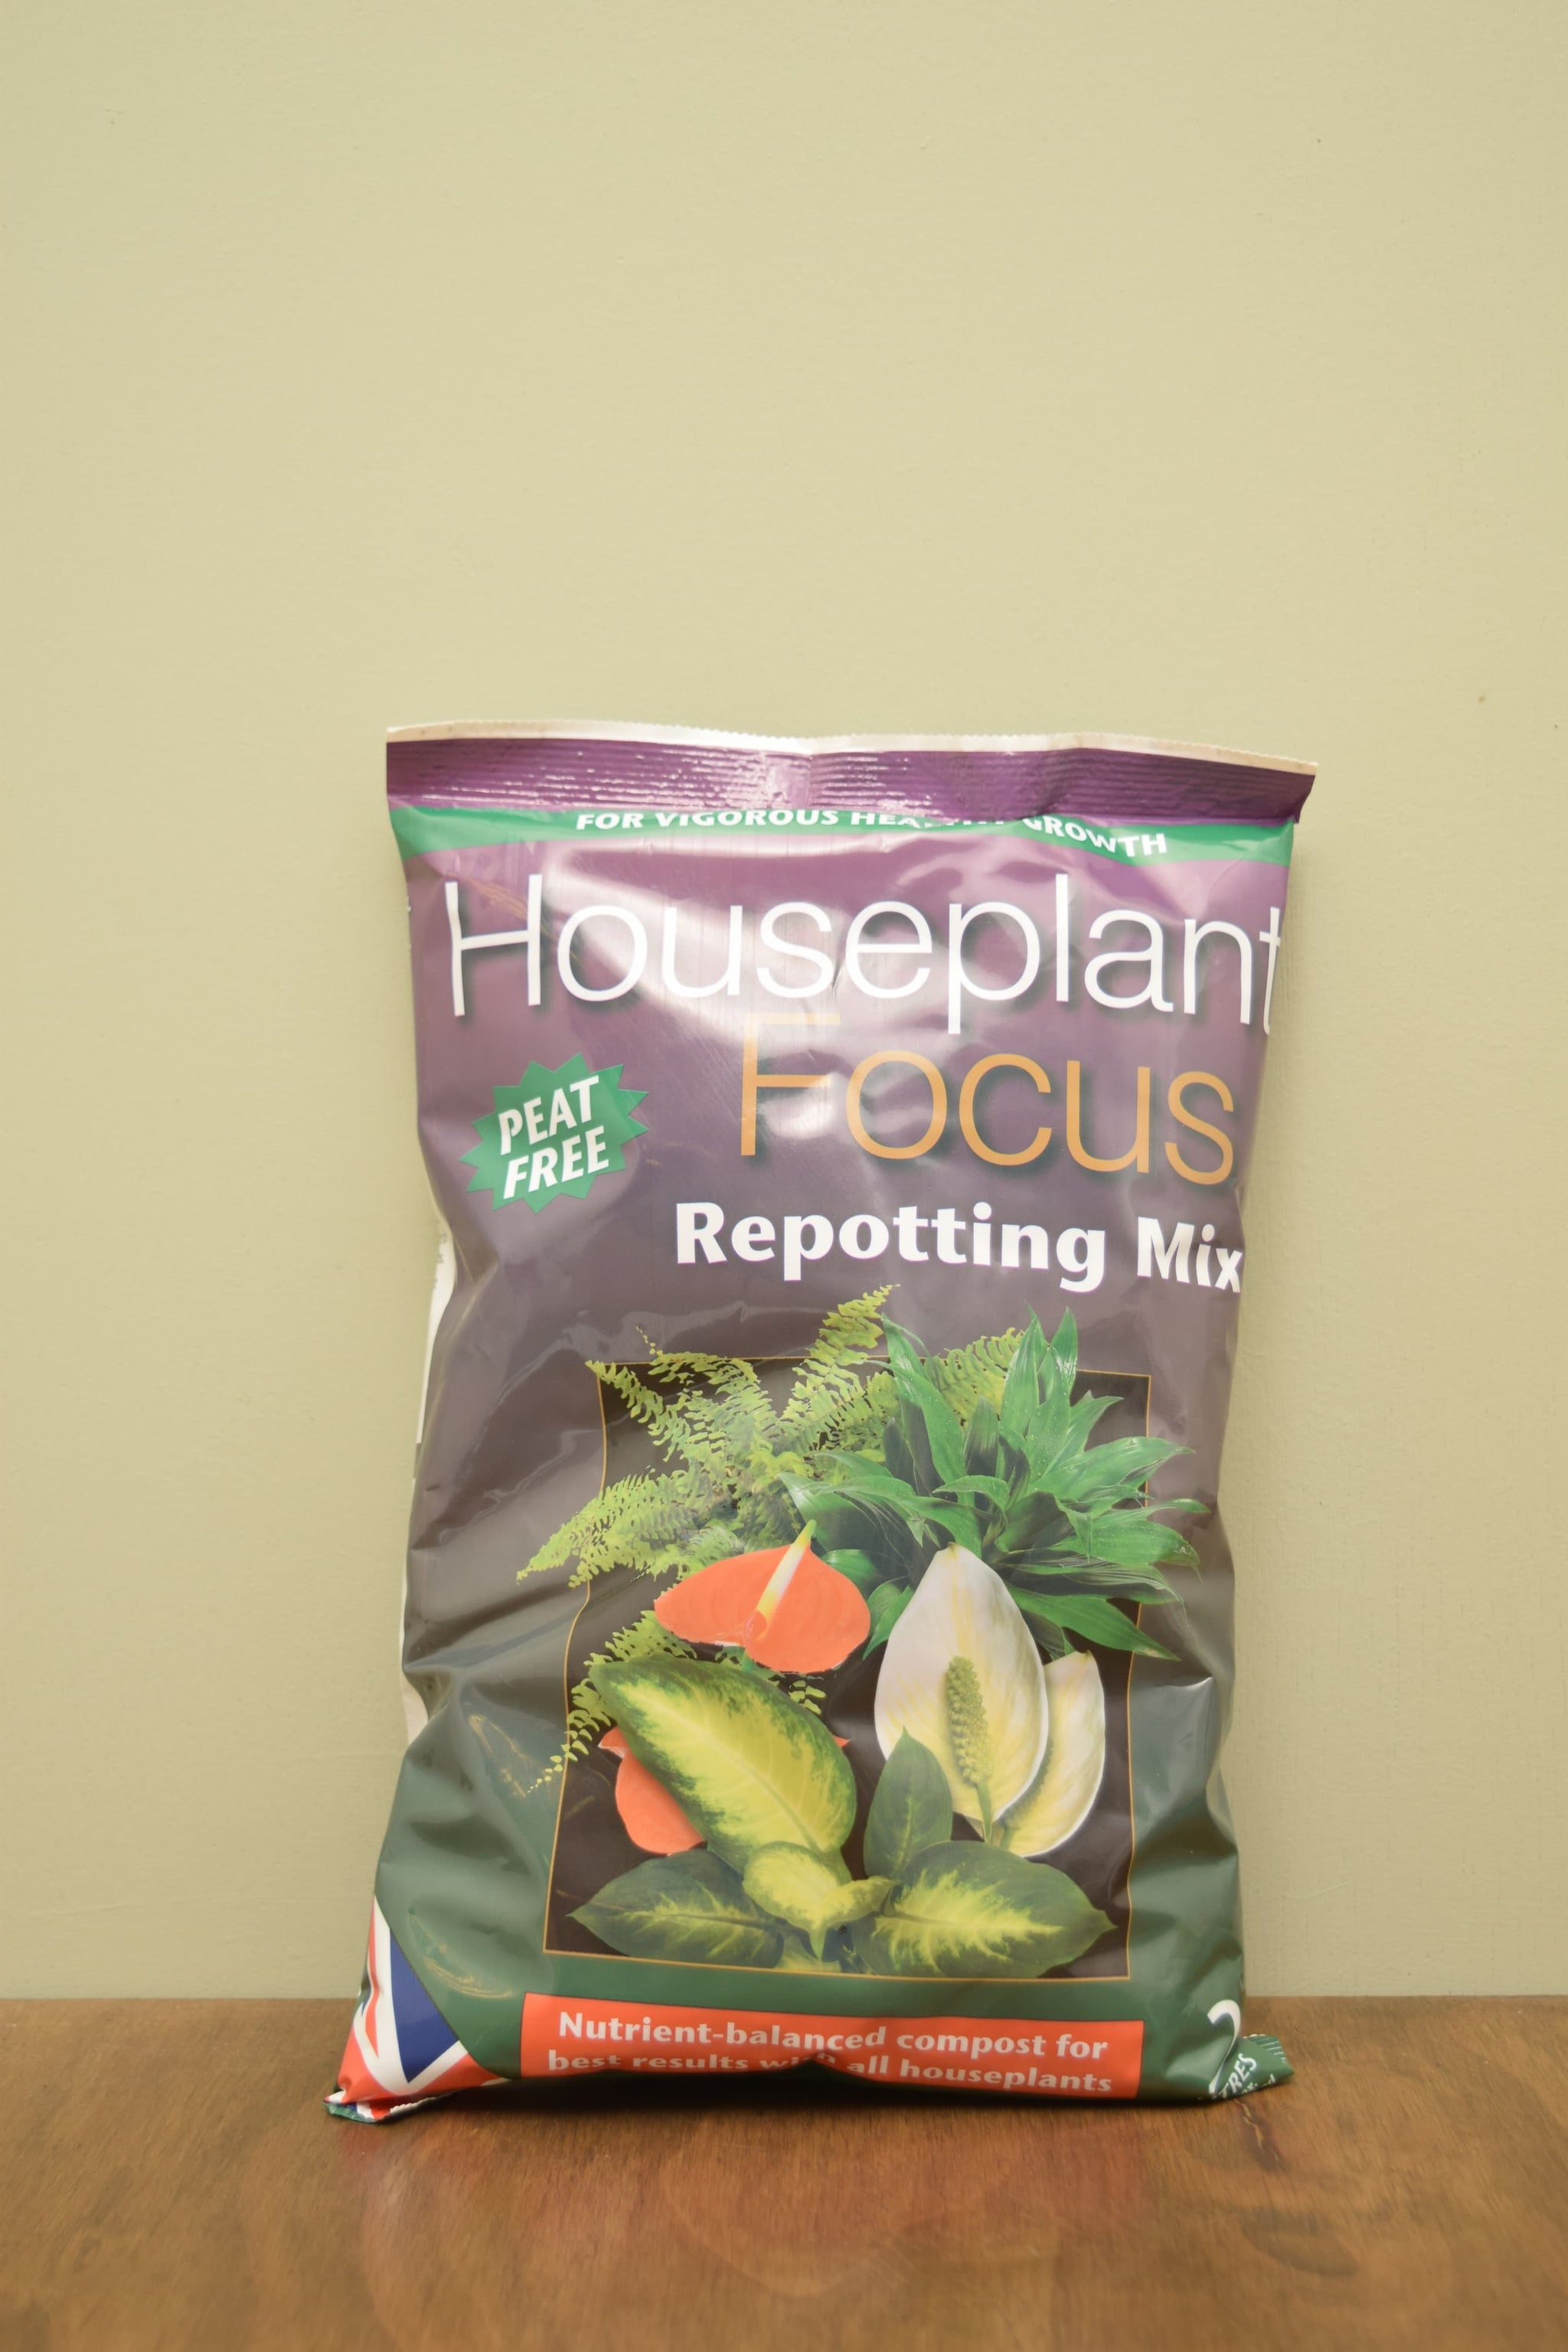 Houseplant Focus Peat Free Repotting Mix